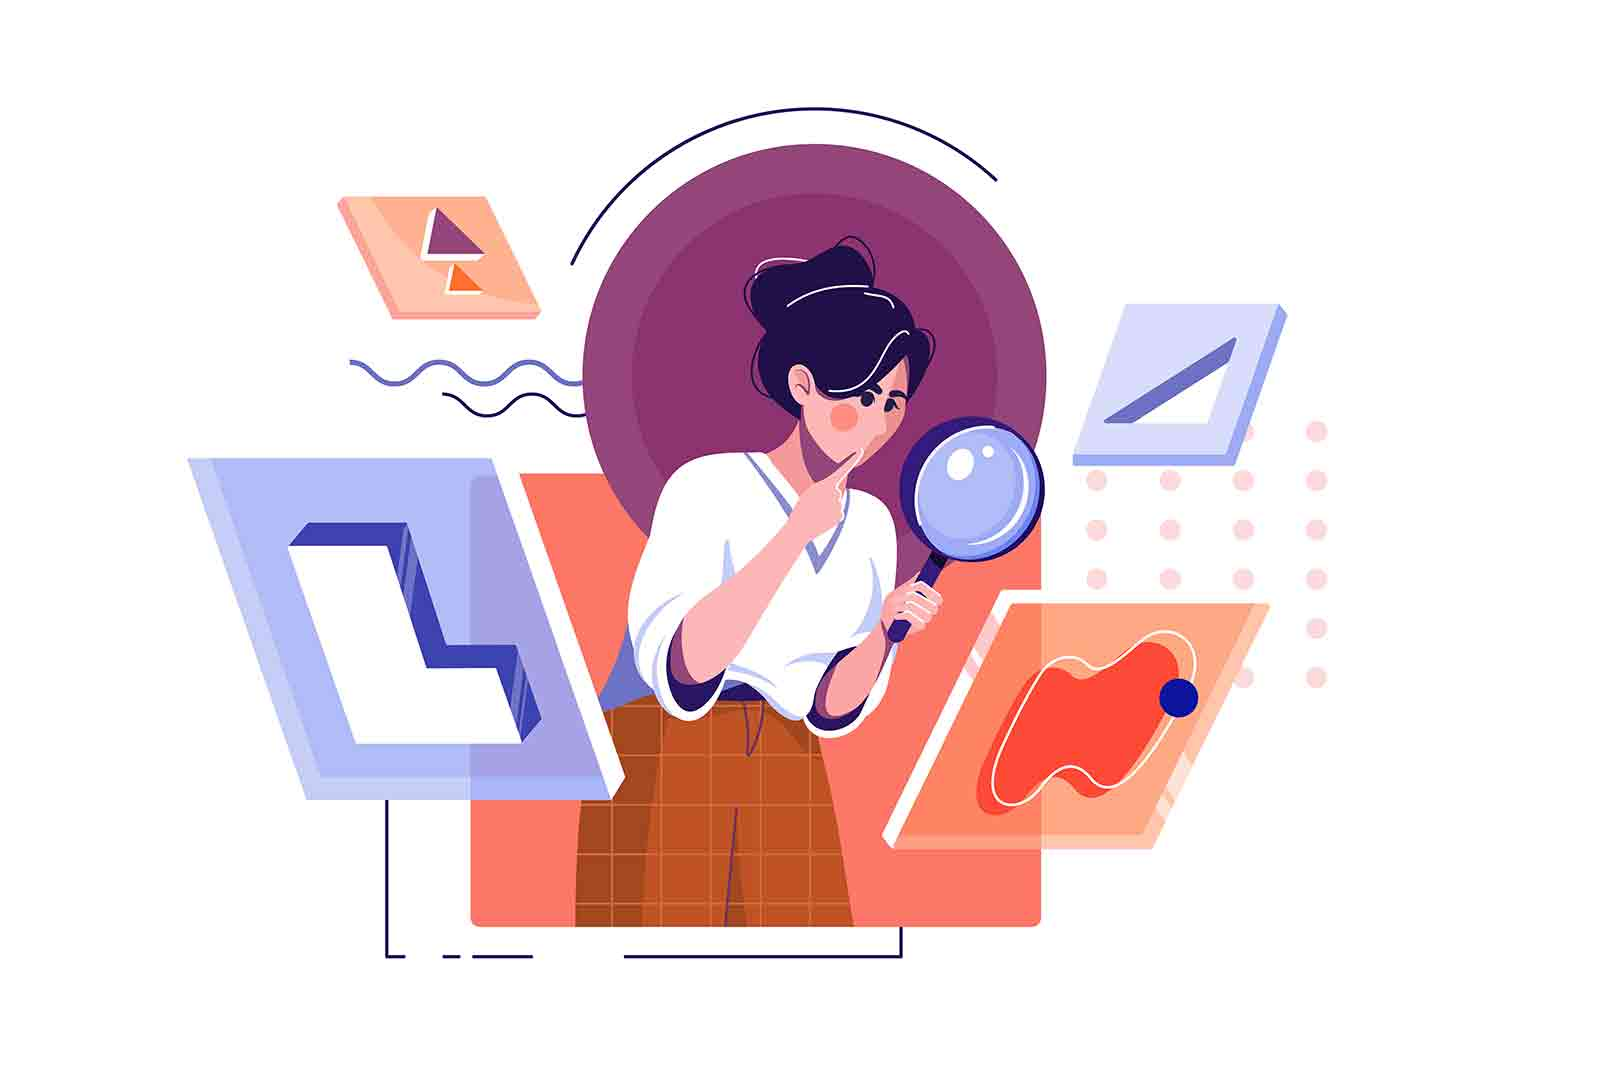 Woman in search with magnifying glass vector illustration. Search for opportunities, look into future flat style. Explore, research concept